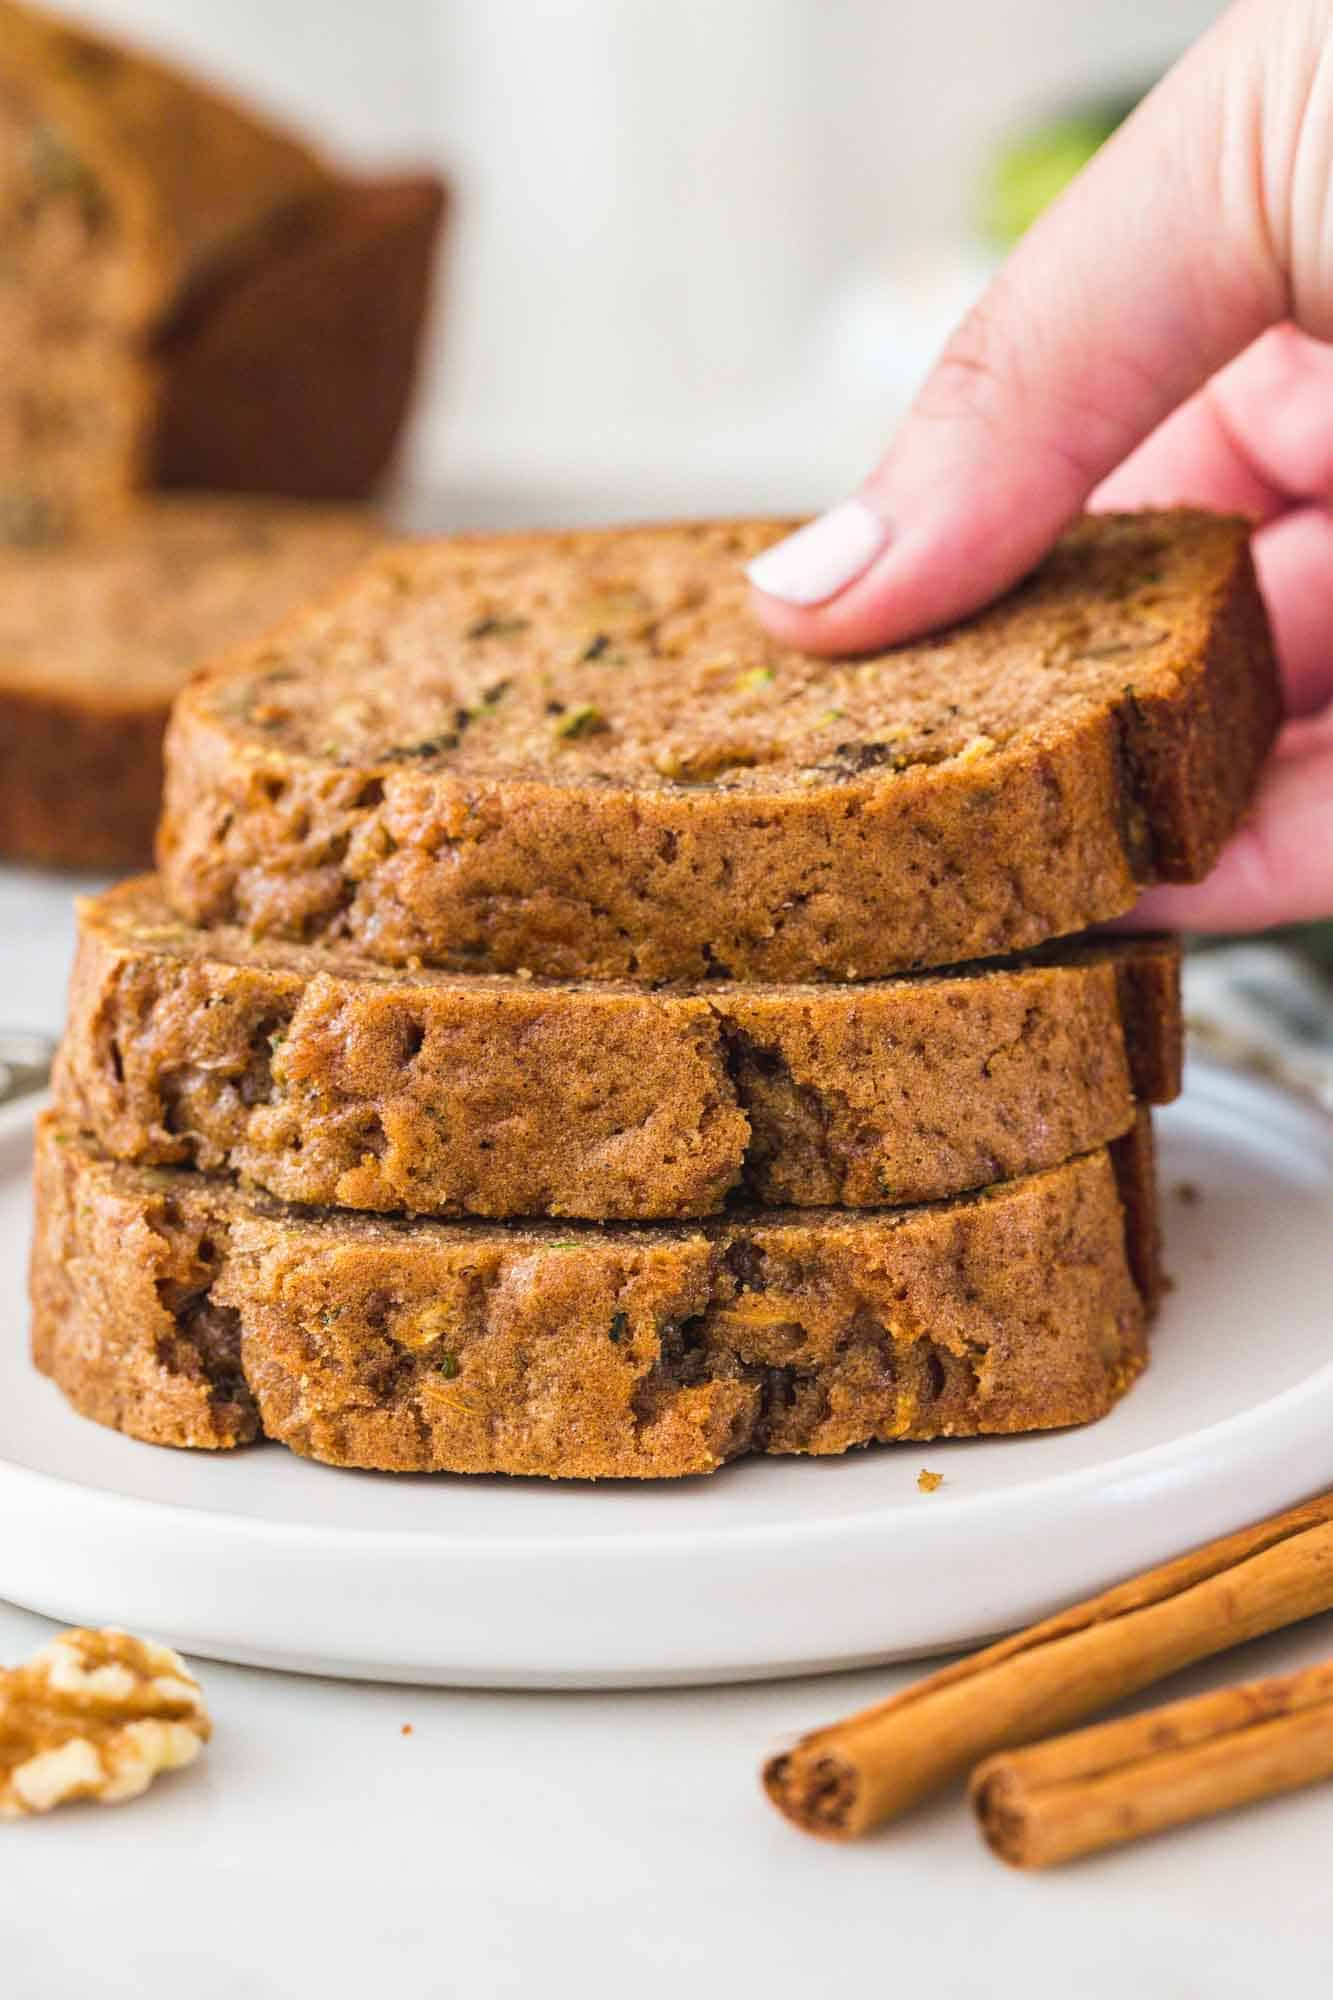 Stacked zucchini bread slices and a hand